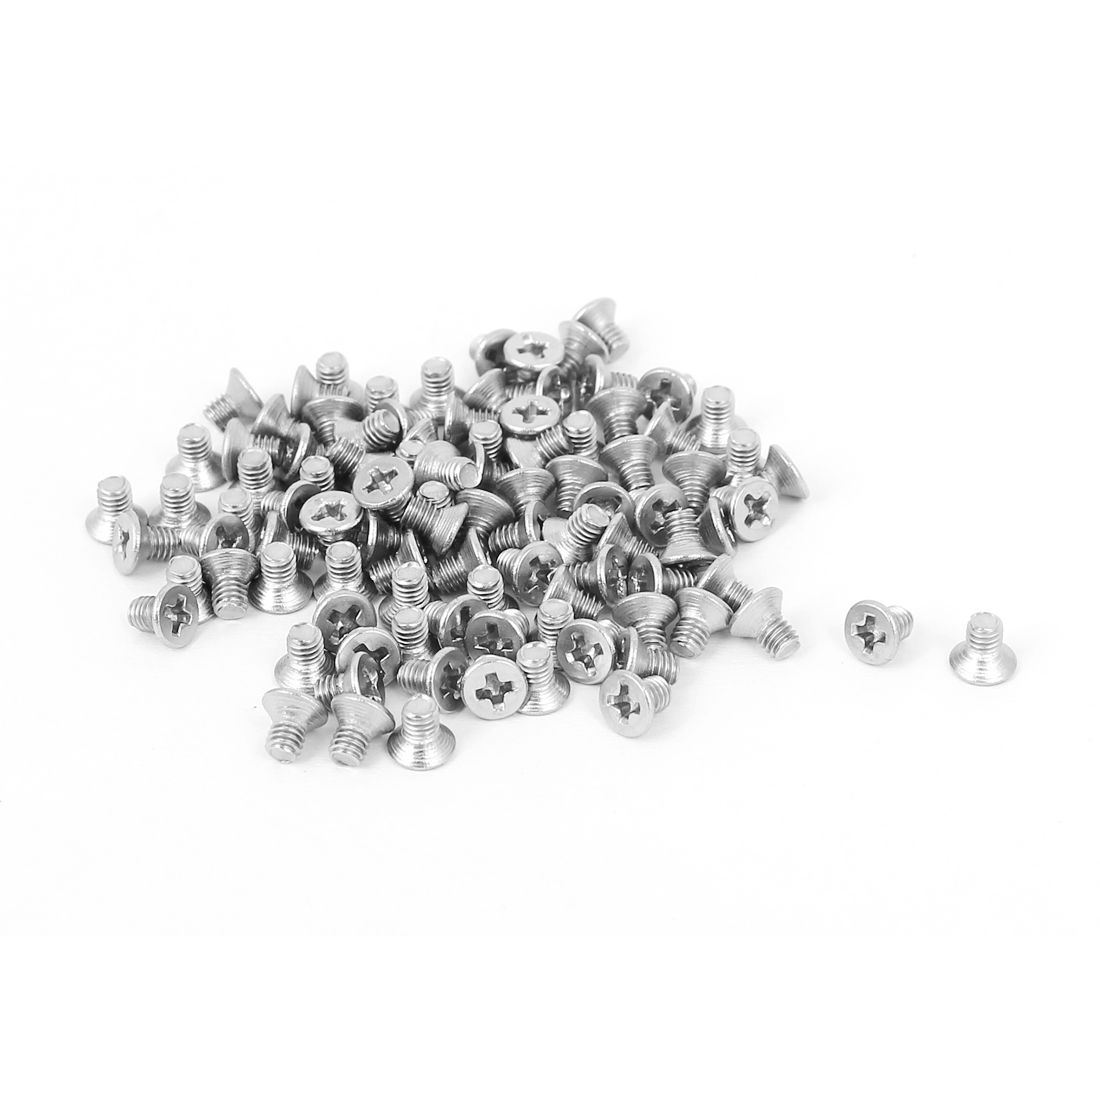 M2.5x4mm Stainless Steel Phillips Flat Countersunk Head Screws 100pcs